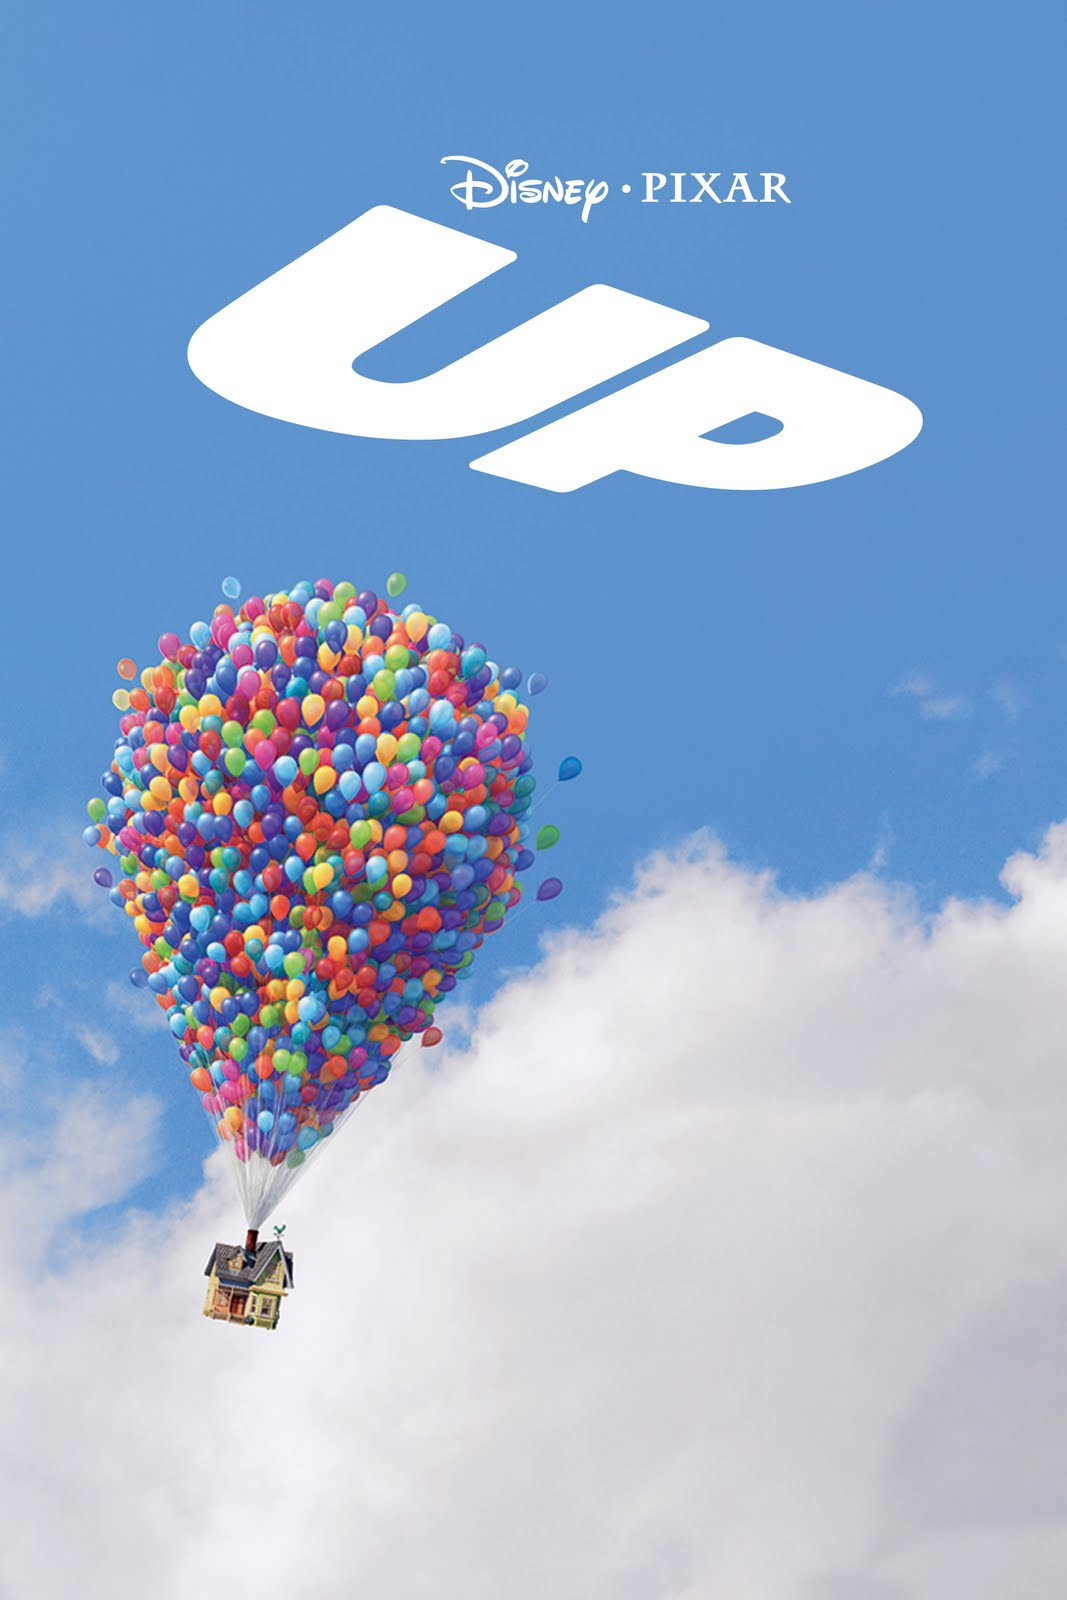 Coverlandia - The #1 Place for Album & Single Cover's: Up ...